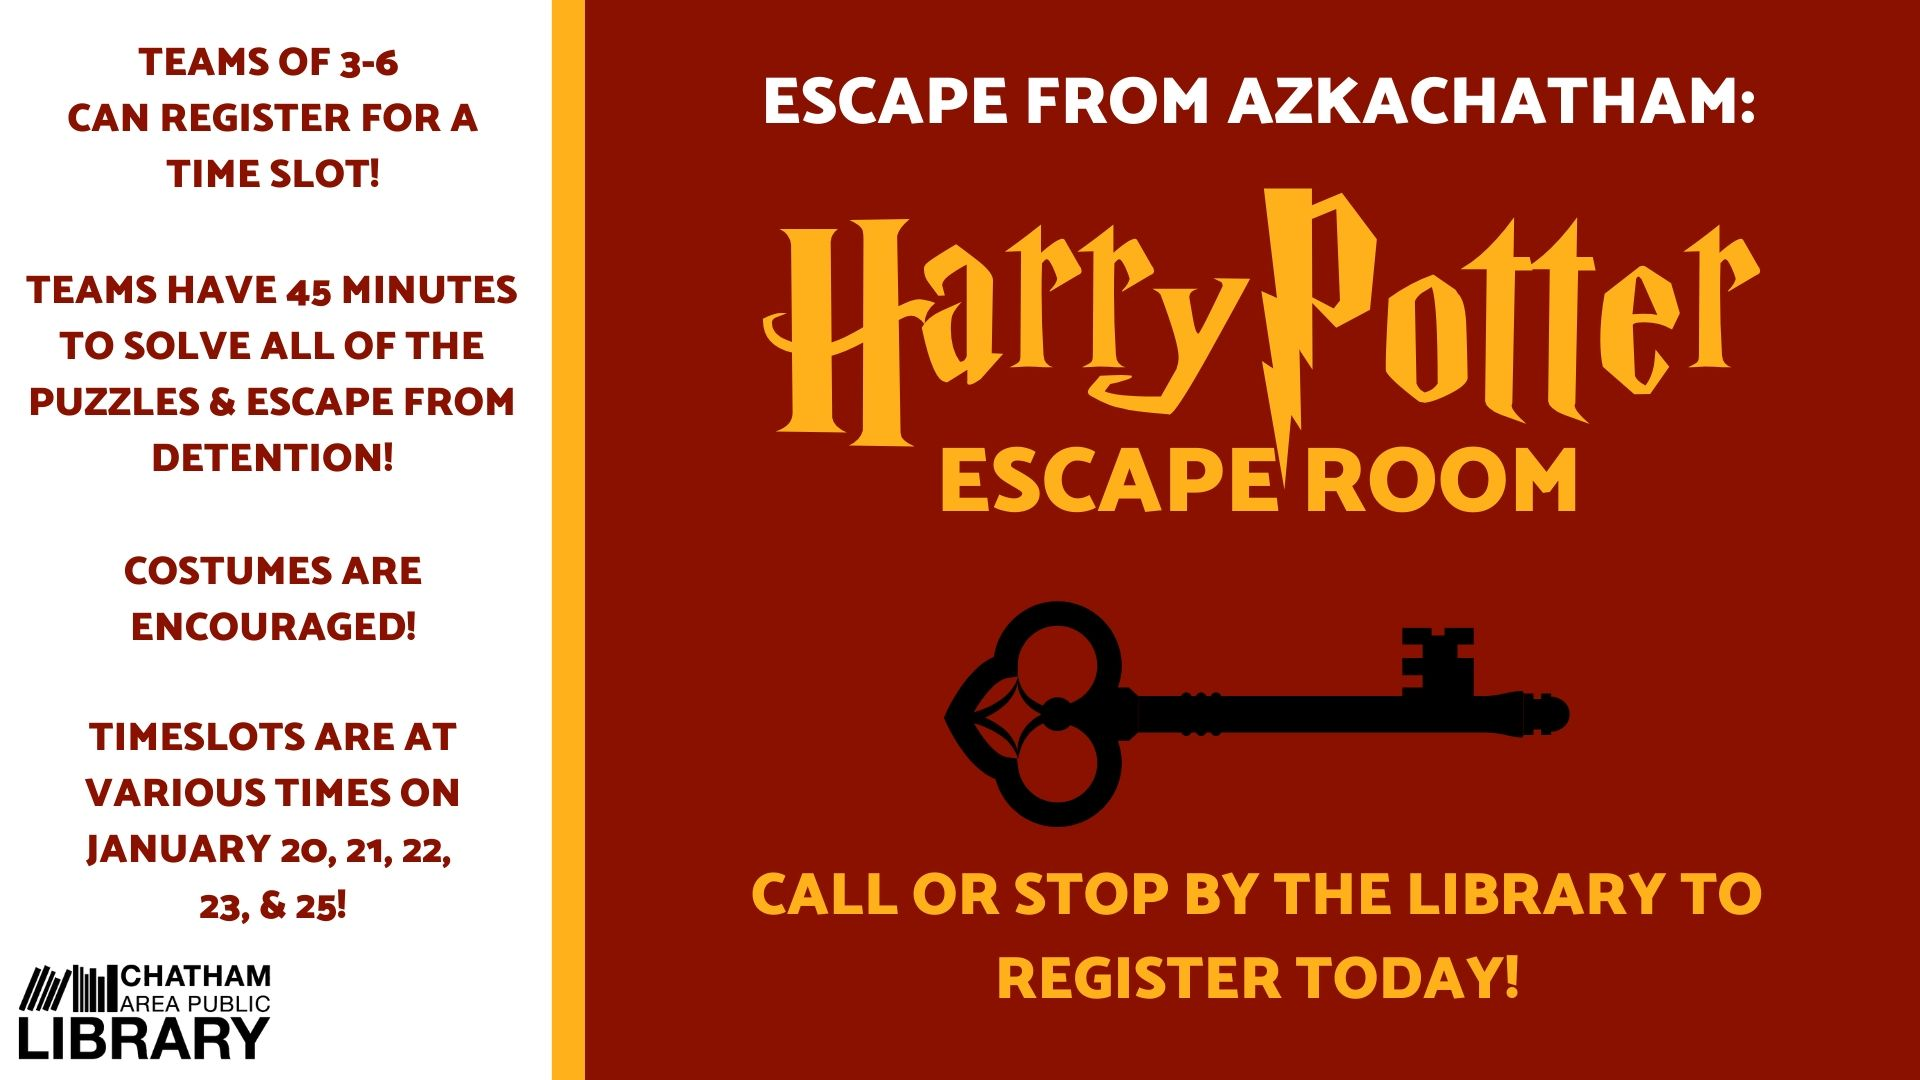 Chatham Area Public Library hosts a Harry Potter Escape Room Escape from AzkaChatham